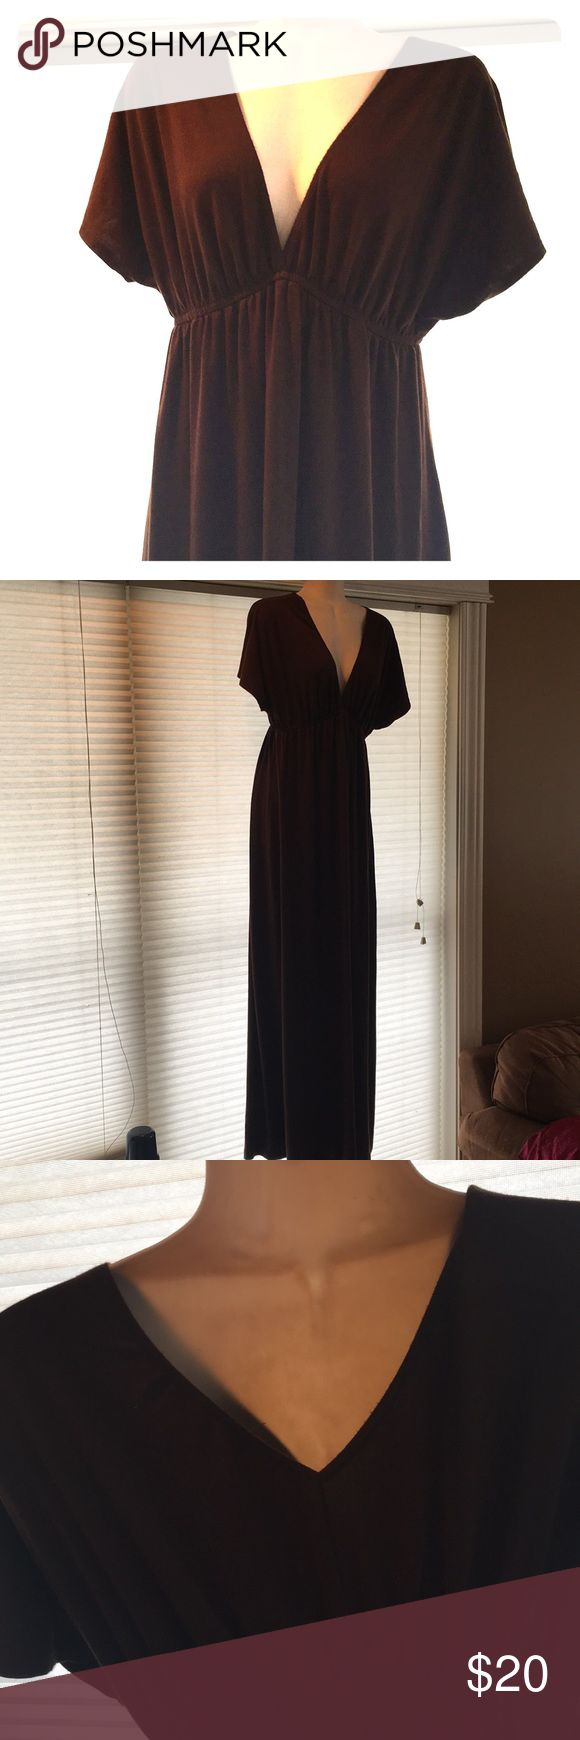 Long chocolate brown maxi dress size M Easy, breezy dark chocolate brown maxi dress.  V neck, elastic waist- endless options with belts or just as is!  Cute v back as well, see third image.  66% polyester, 29% rayon, 5% spandex- feels like a lightweight cotton but more durable material.  Very versatile! Dresses Maxi